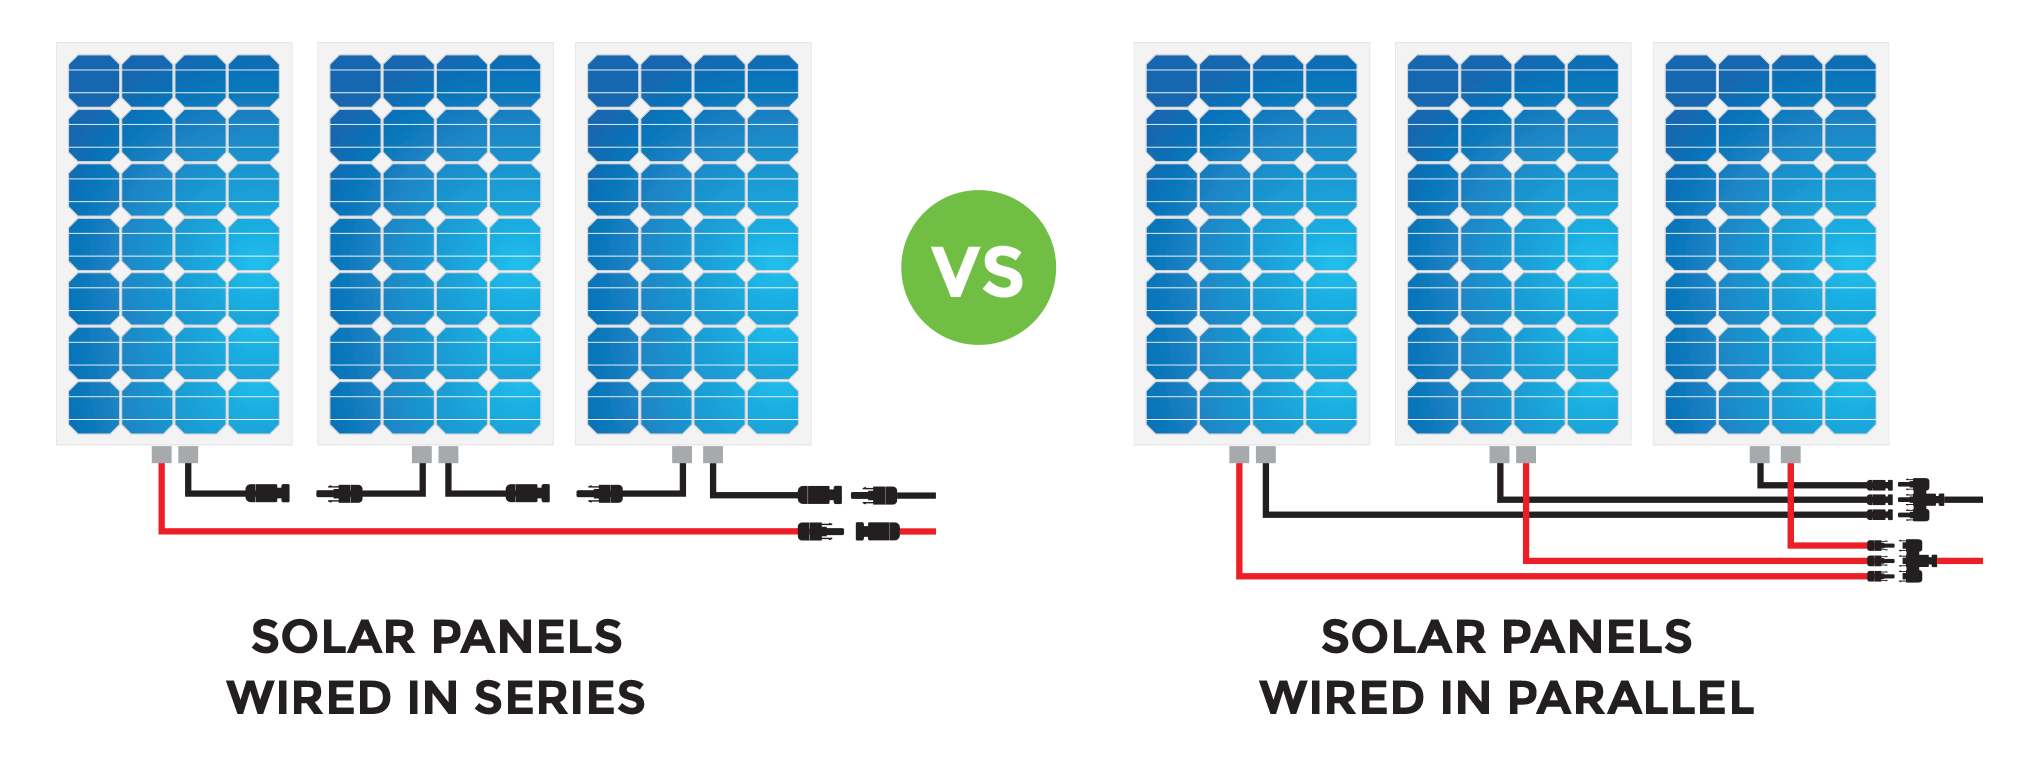 wiring solar panels in series vs parallel and how that works with a solar charge controller